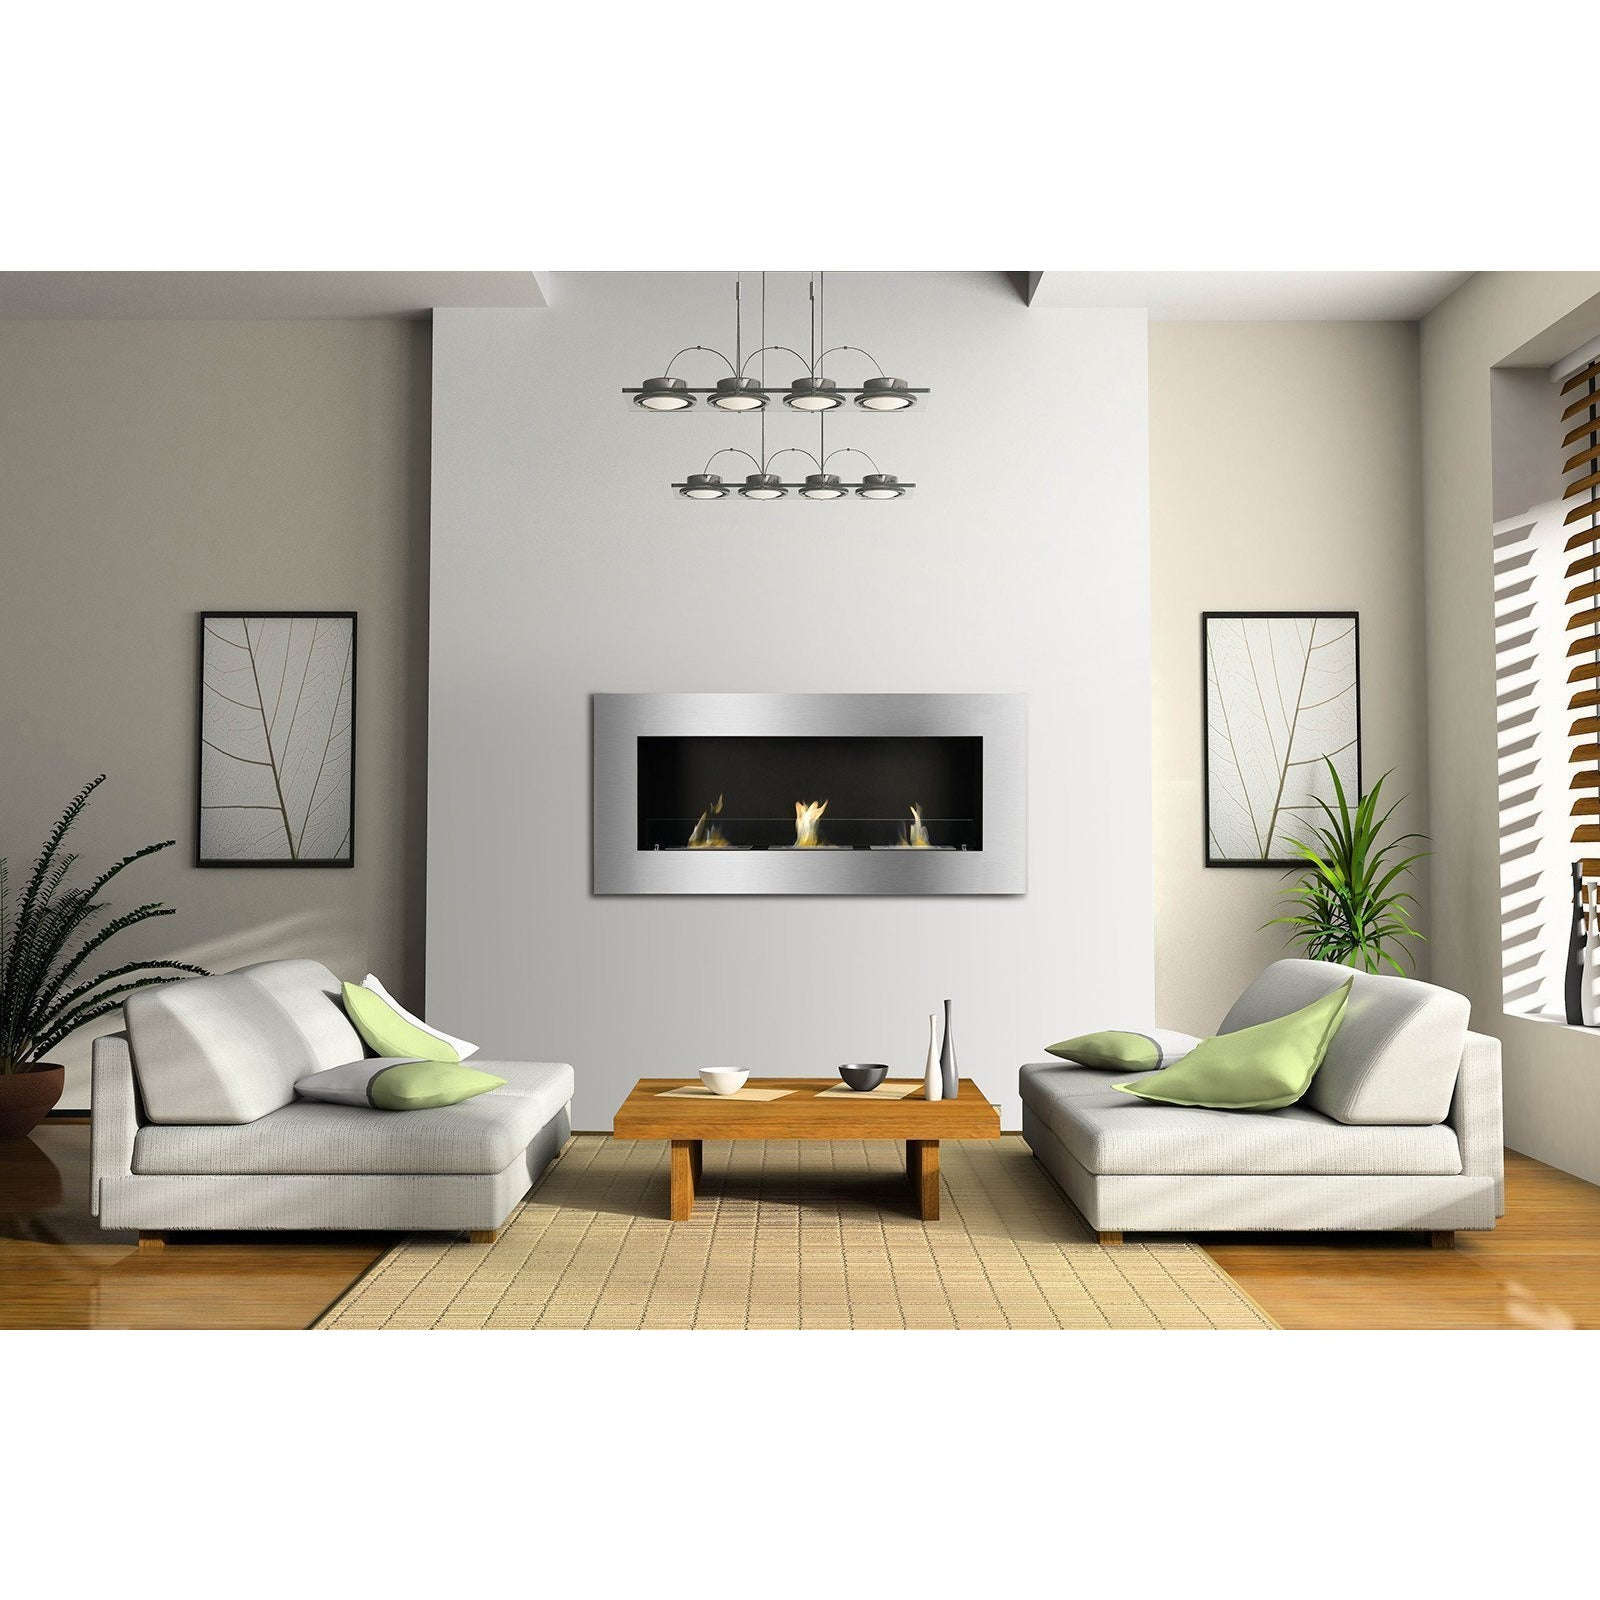 "Ethanol Fireplace - Ignis Optimum - 59"" Built-in/Wall Mounted Ethanol Fireplace (WMF-013)"